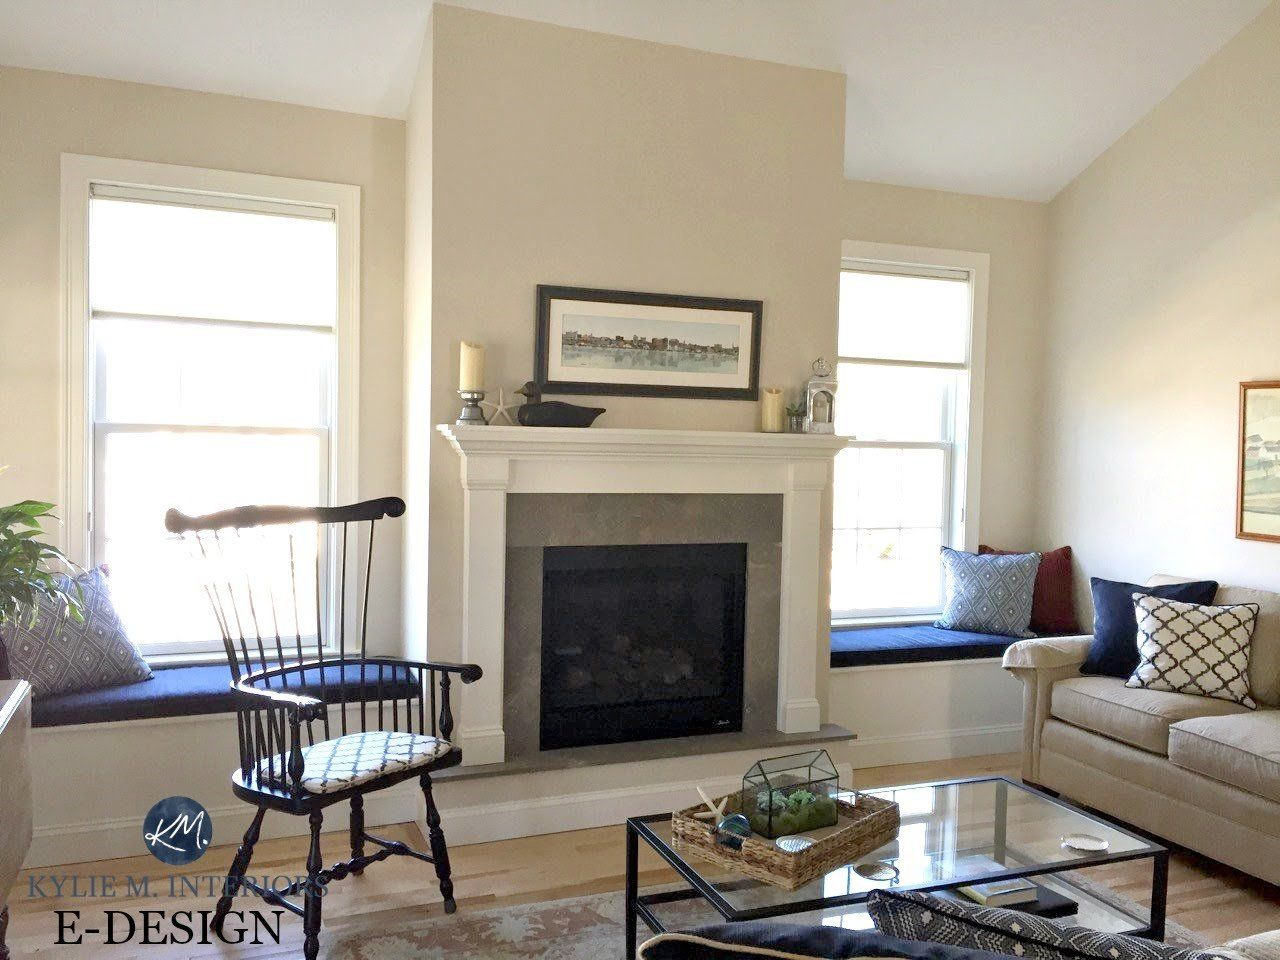 Sherwin Williams : 5 of the Best Neutral / Beige Paint ...